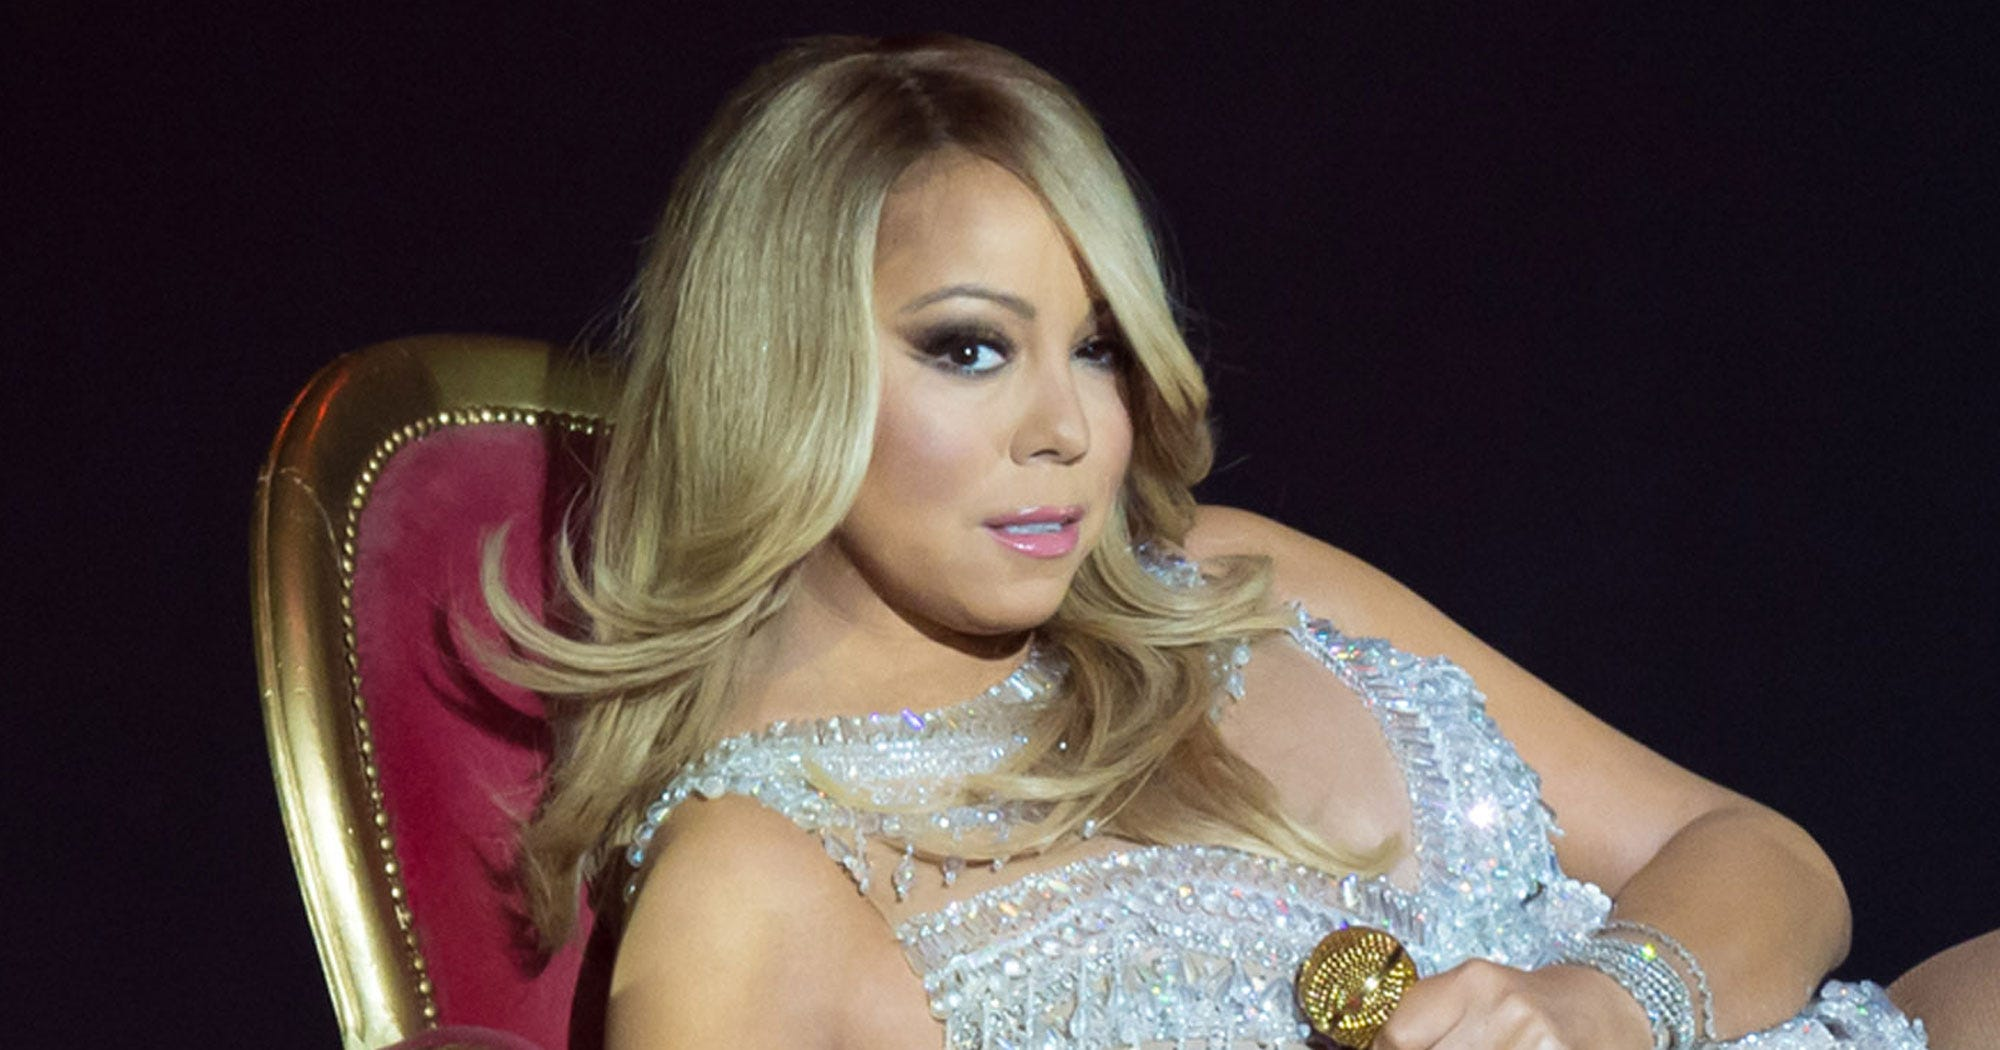 Mariah Carey's Sister Was Arrested For Prostitution